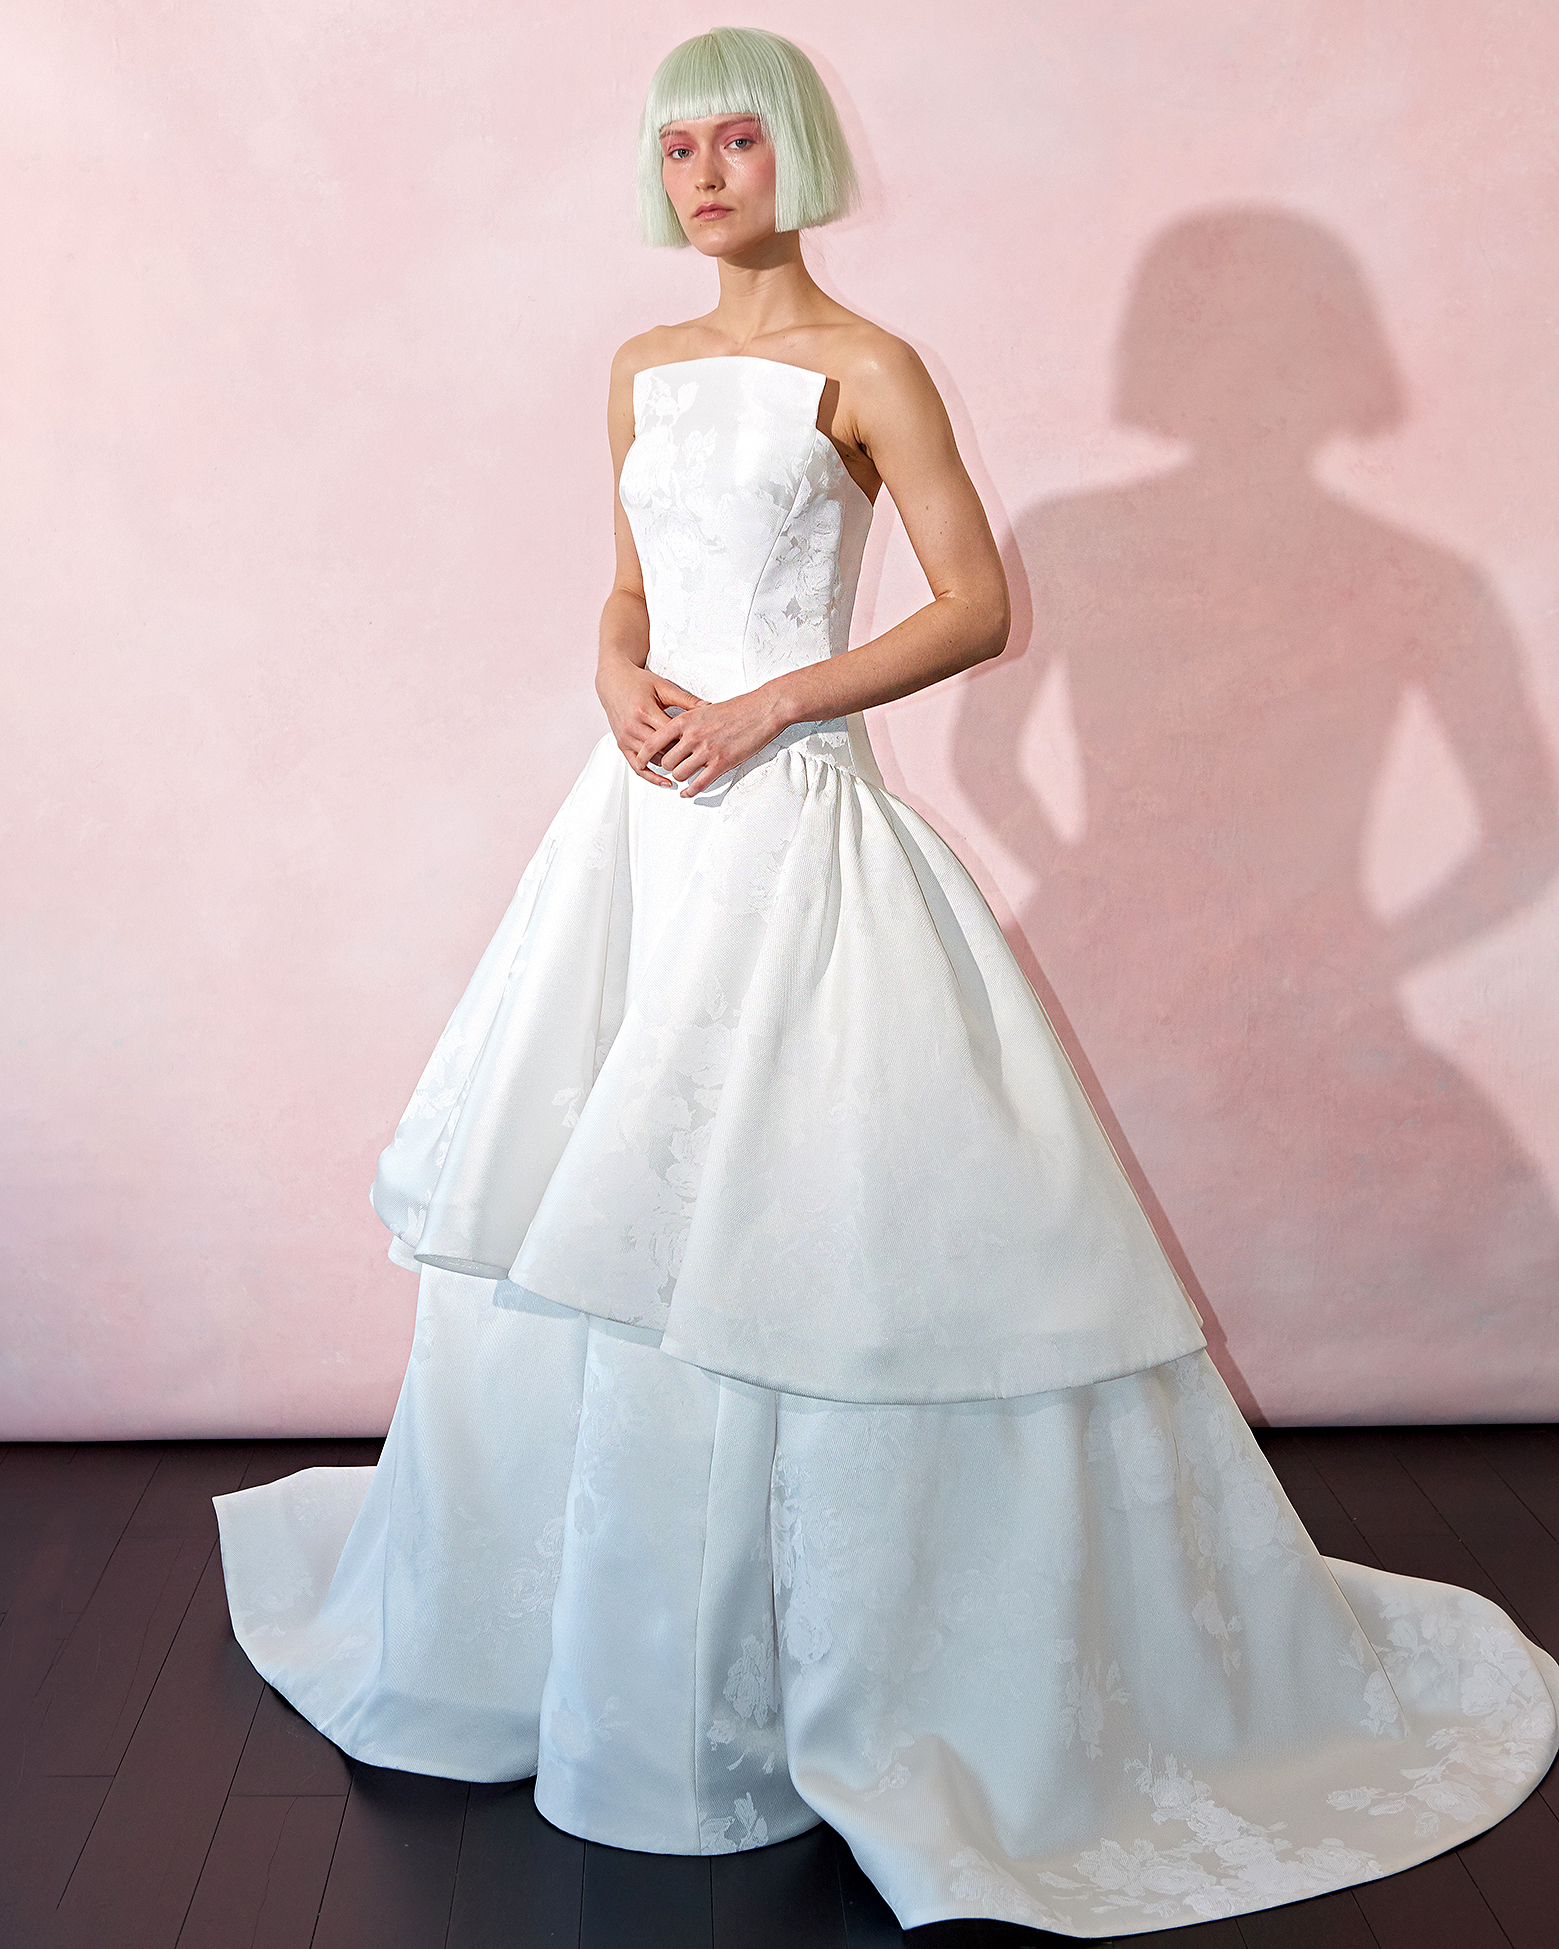 isabelle armstrong wedding dress spring 2019 tiered bodice neckline panel